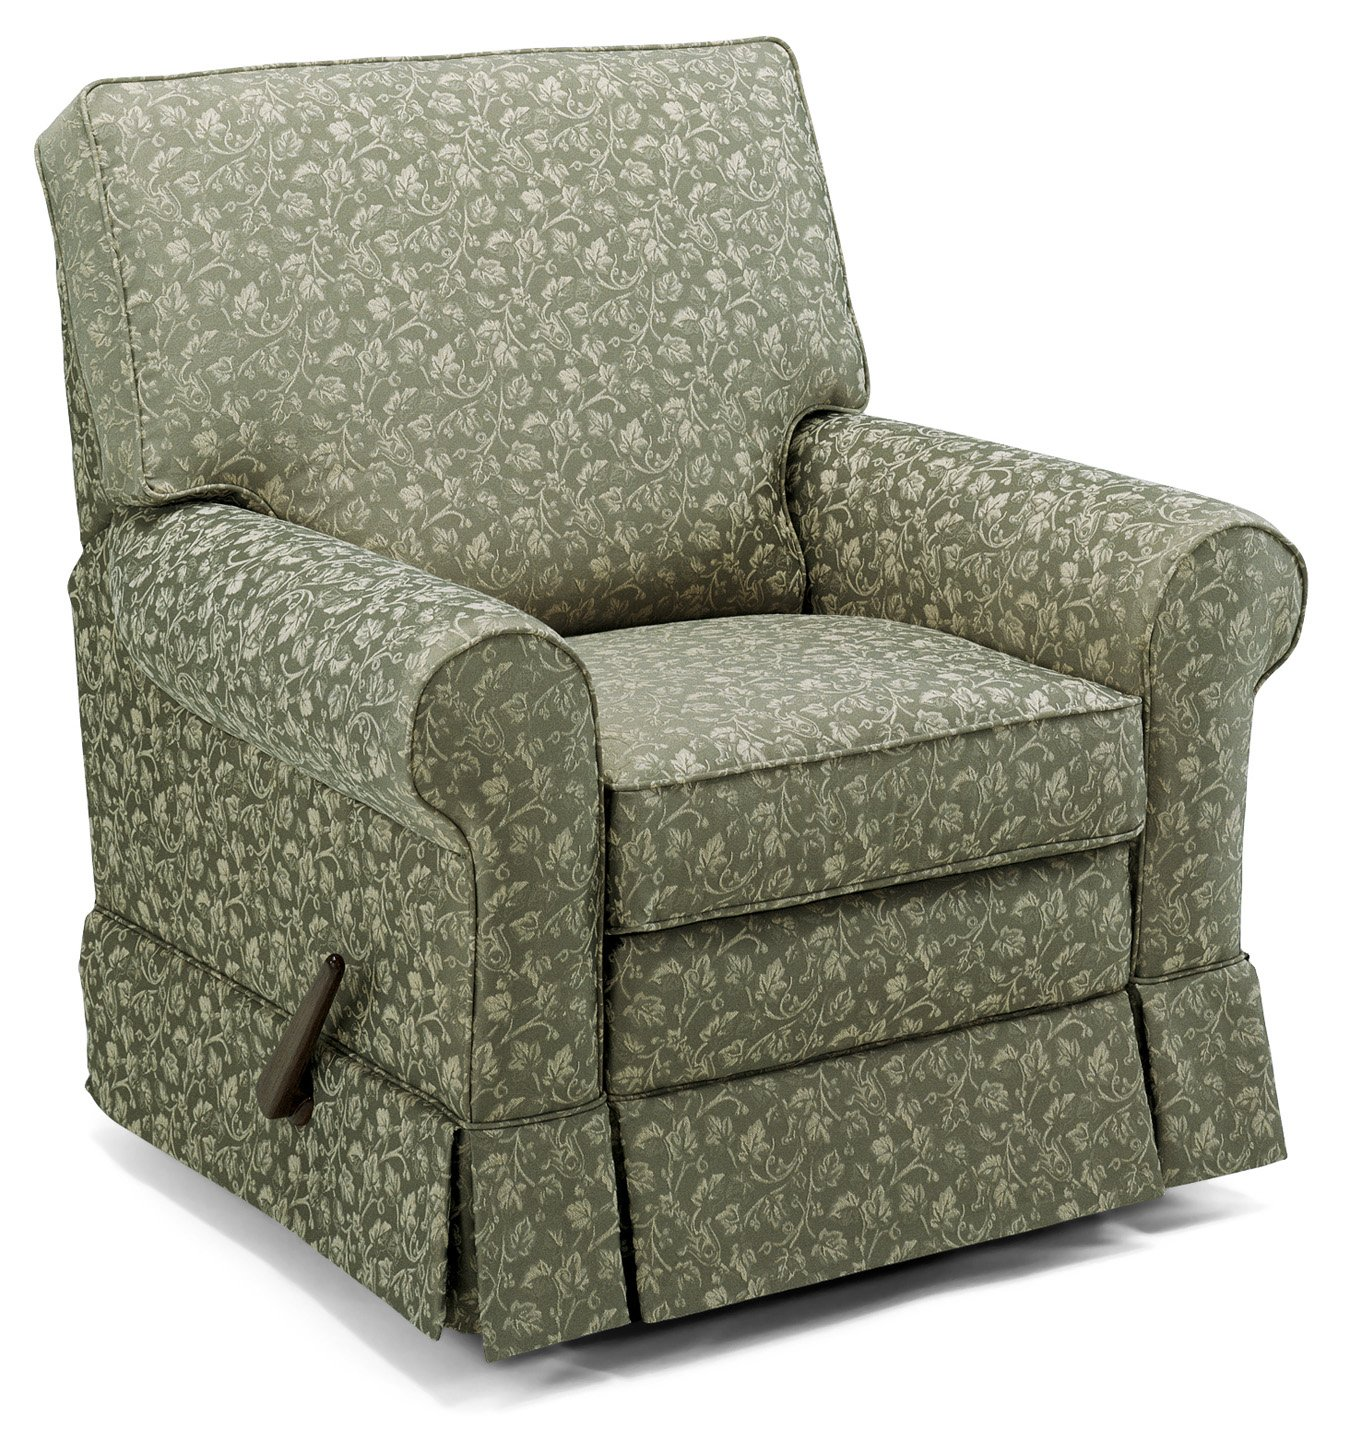 biltrite s recliner duty recliners big tall at heavy leather man furniture mattresses milwaukee specialties for